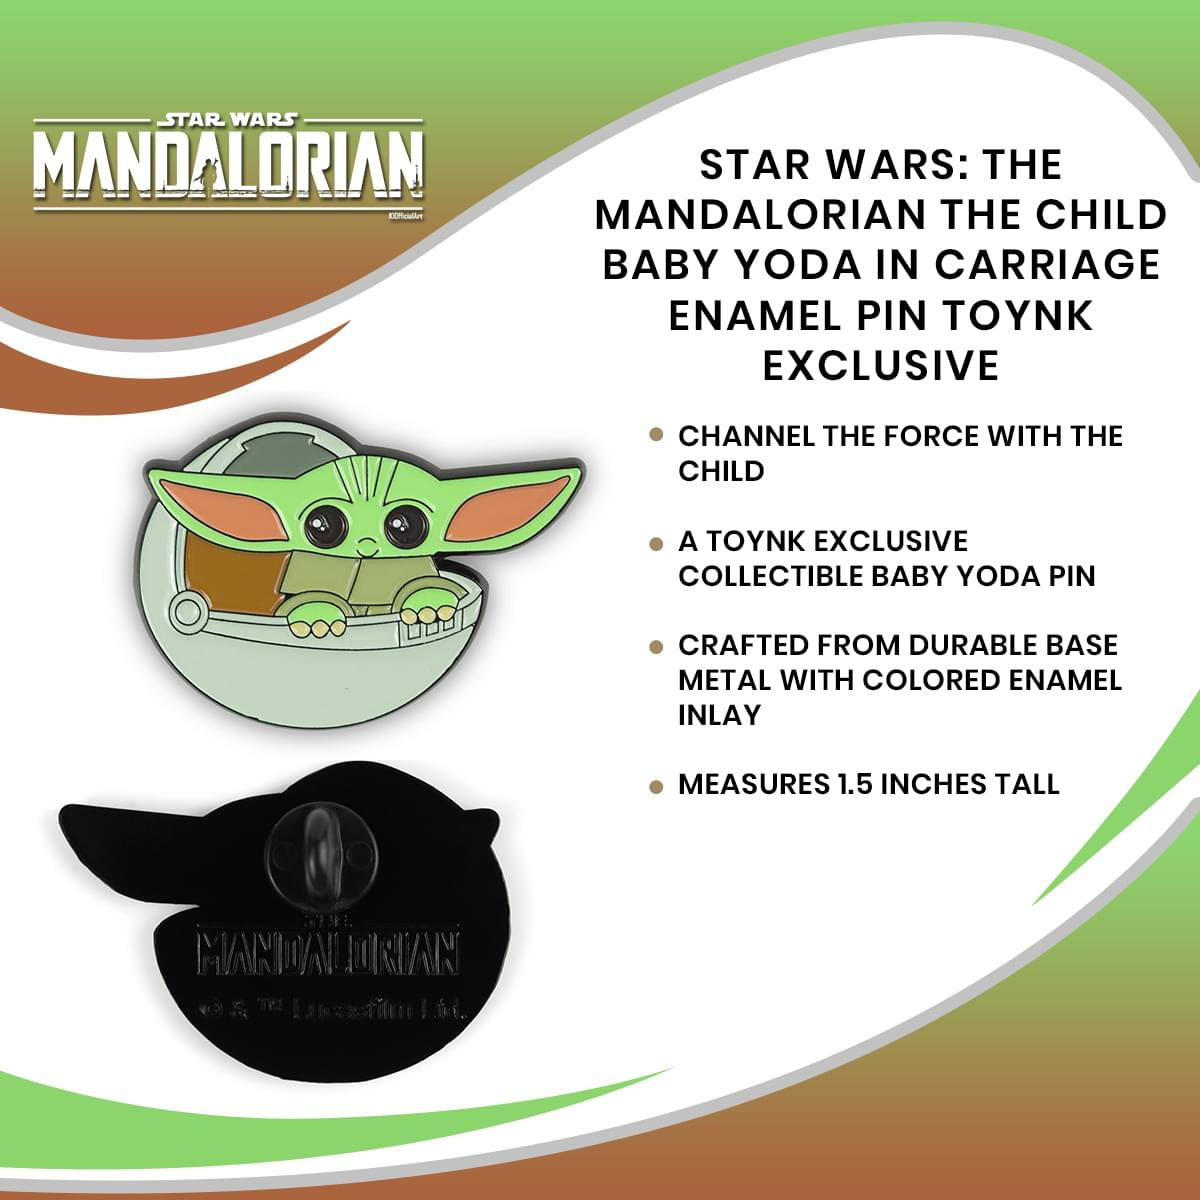 Star Wars: The Mandalorian The Child Baby Yoda In Carriage Enamel Pin Toynk Exclusive